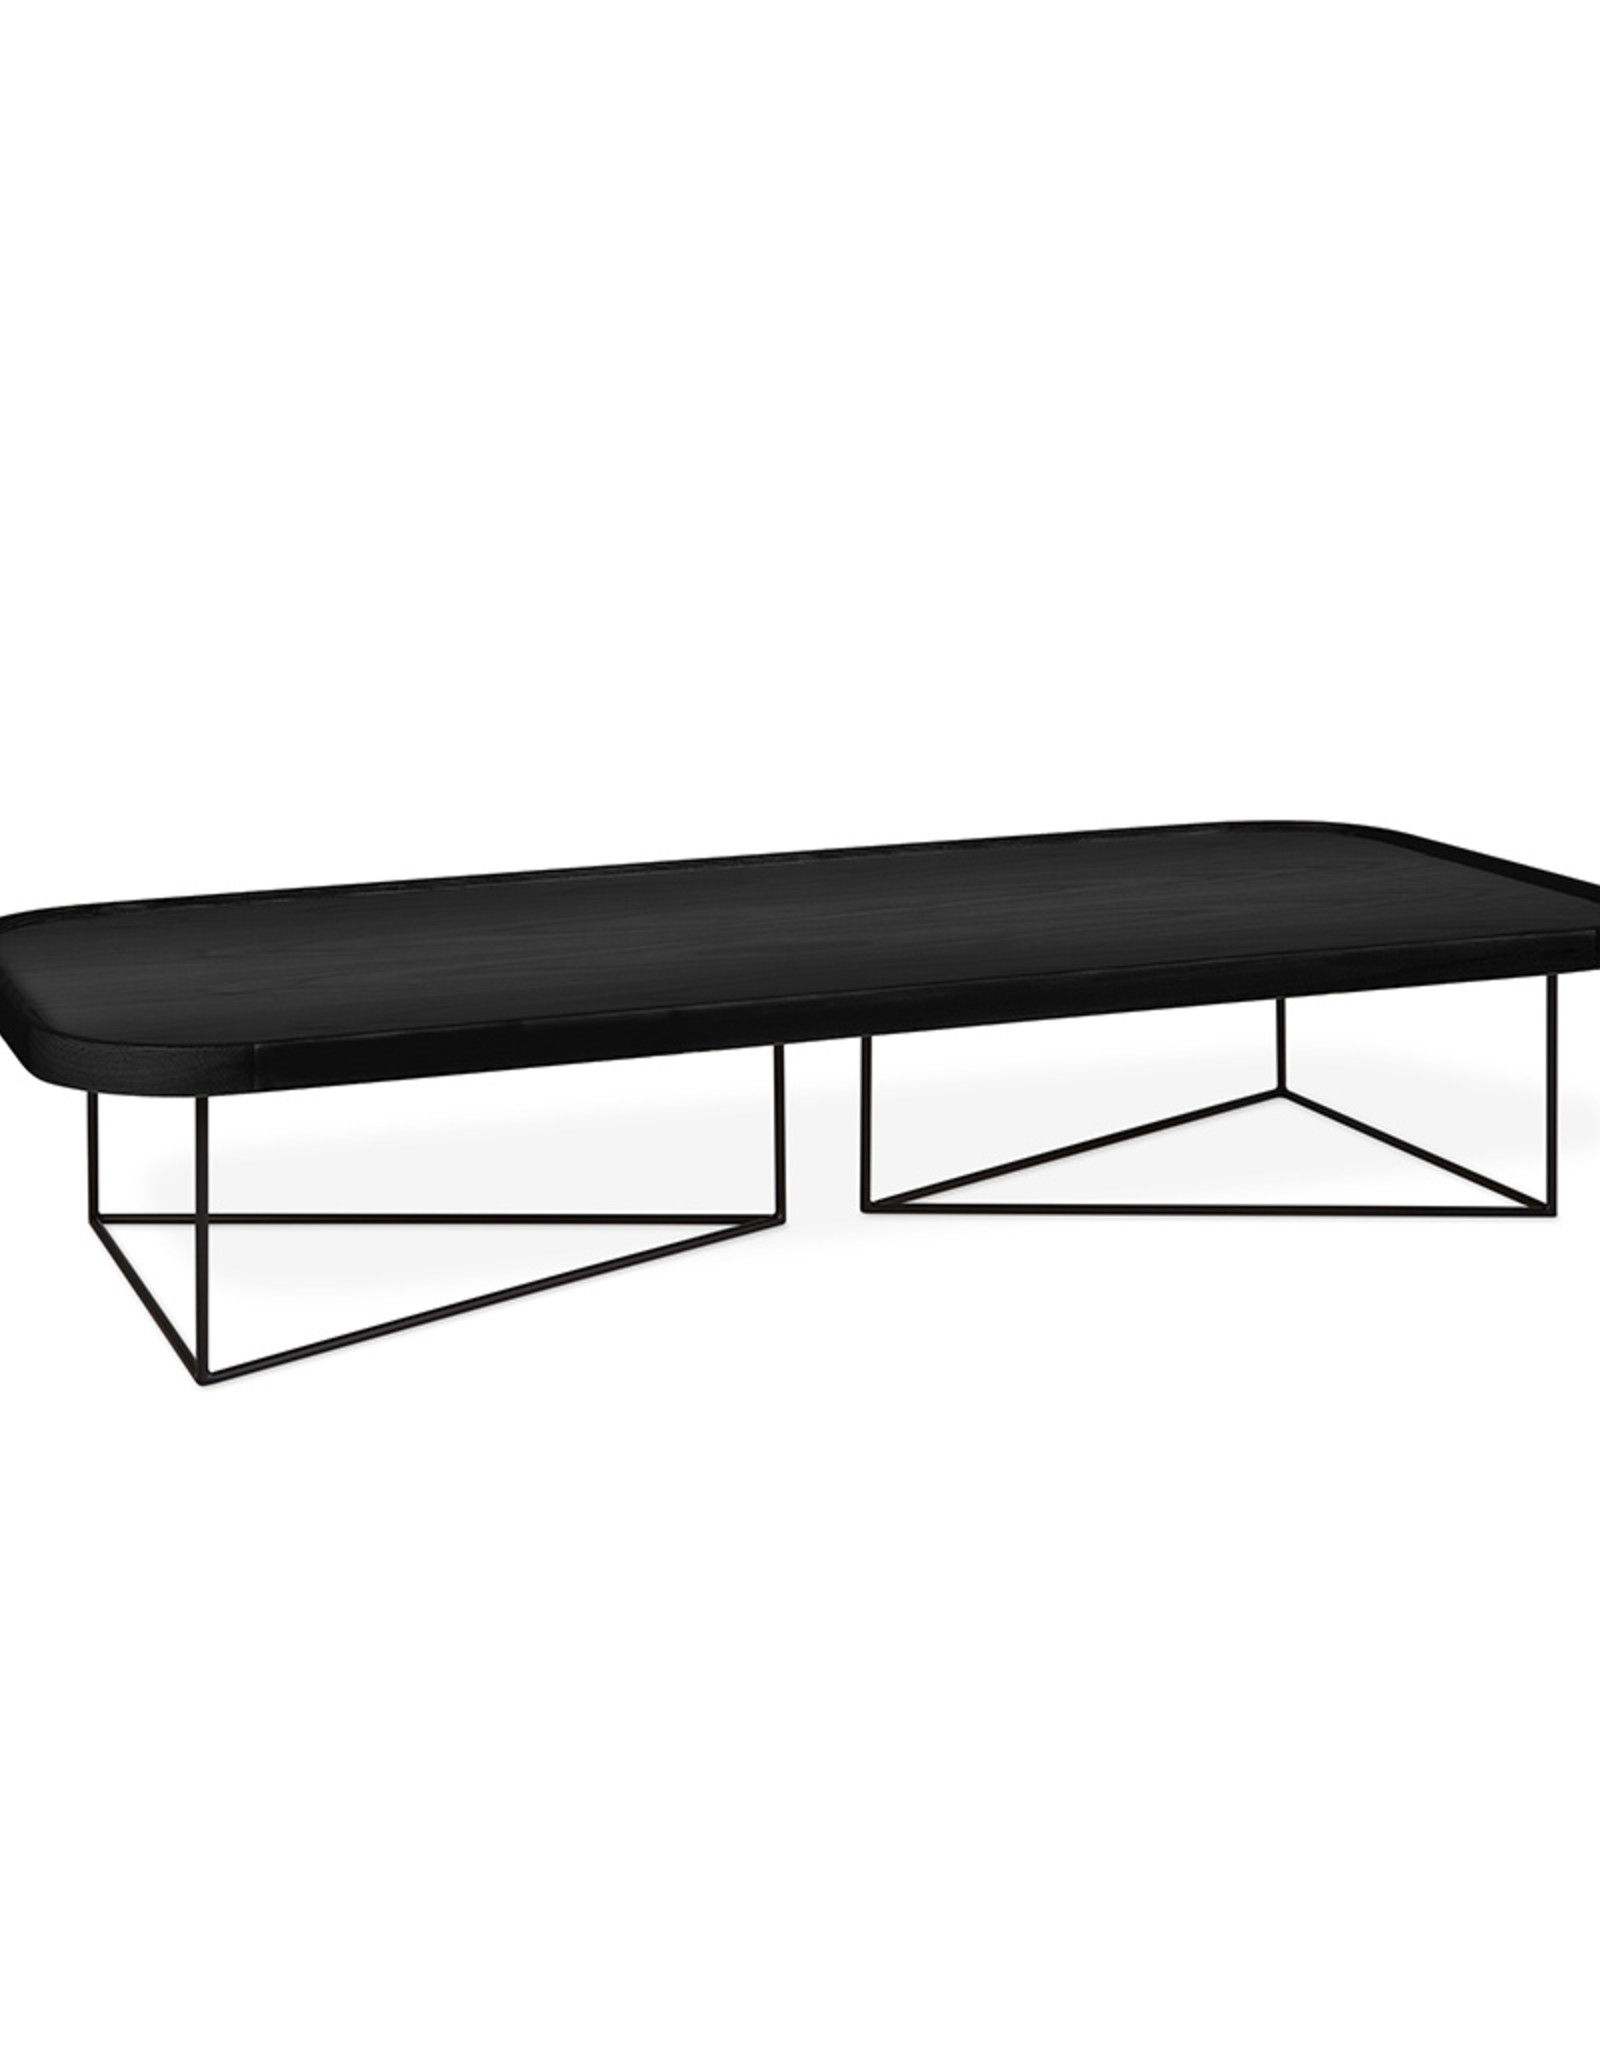 Gus* Modern Porter Coffee Table Rectangle